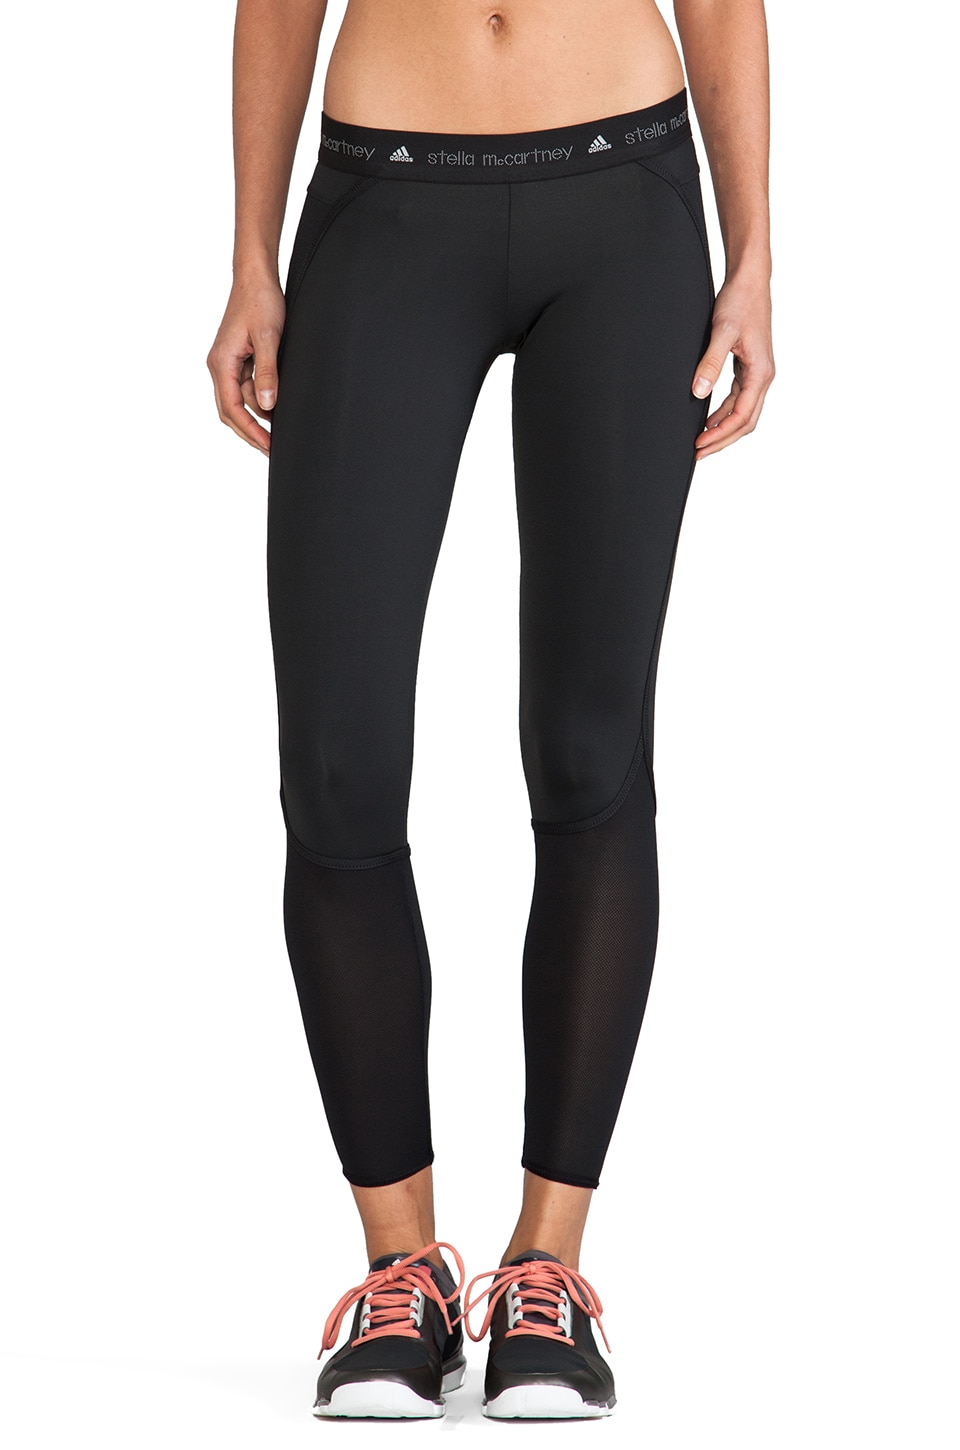 adidas by Stella McCartney Run 7-8 Tight Legging in Black